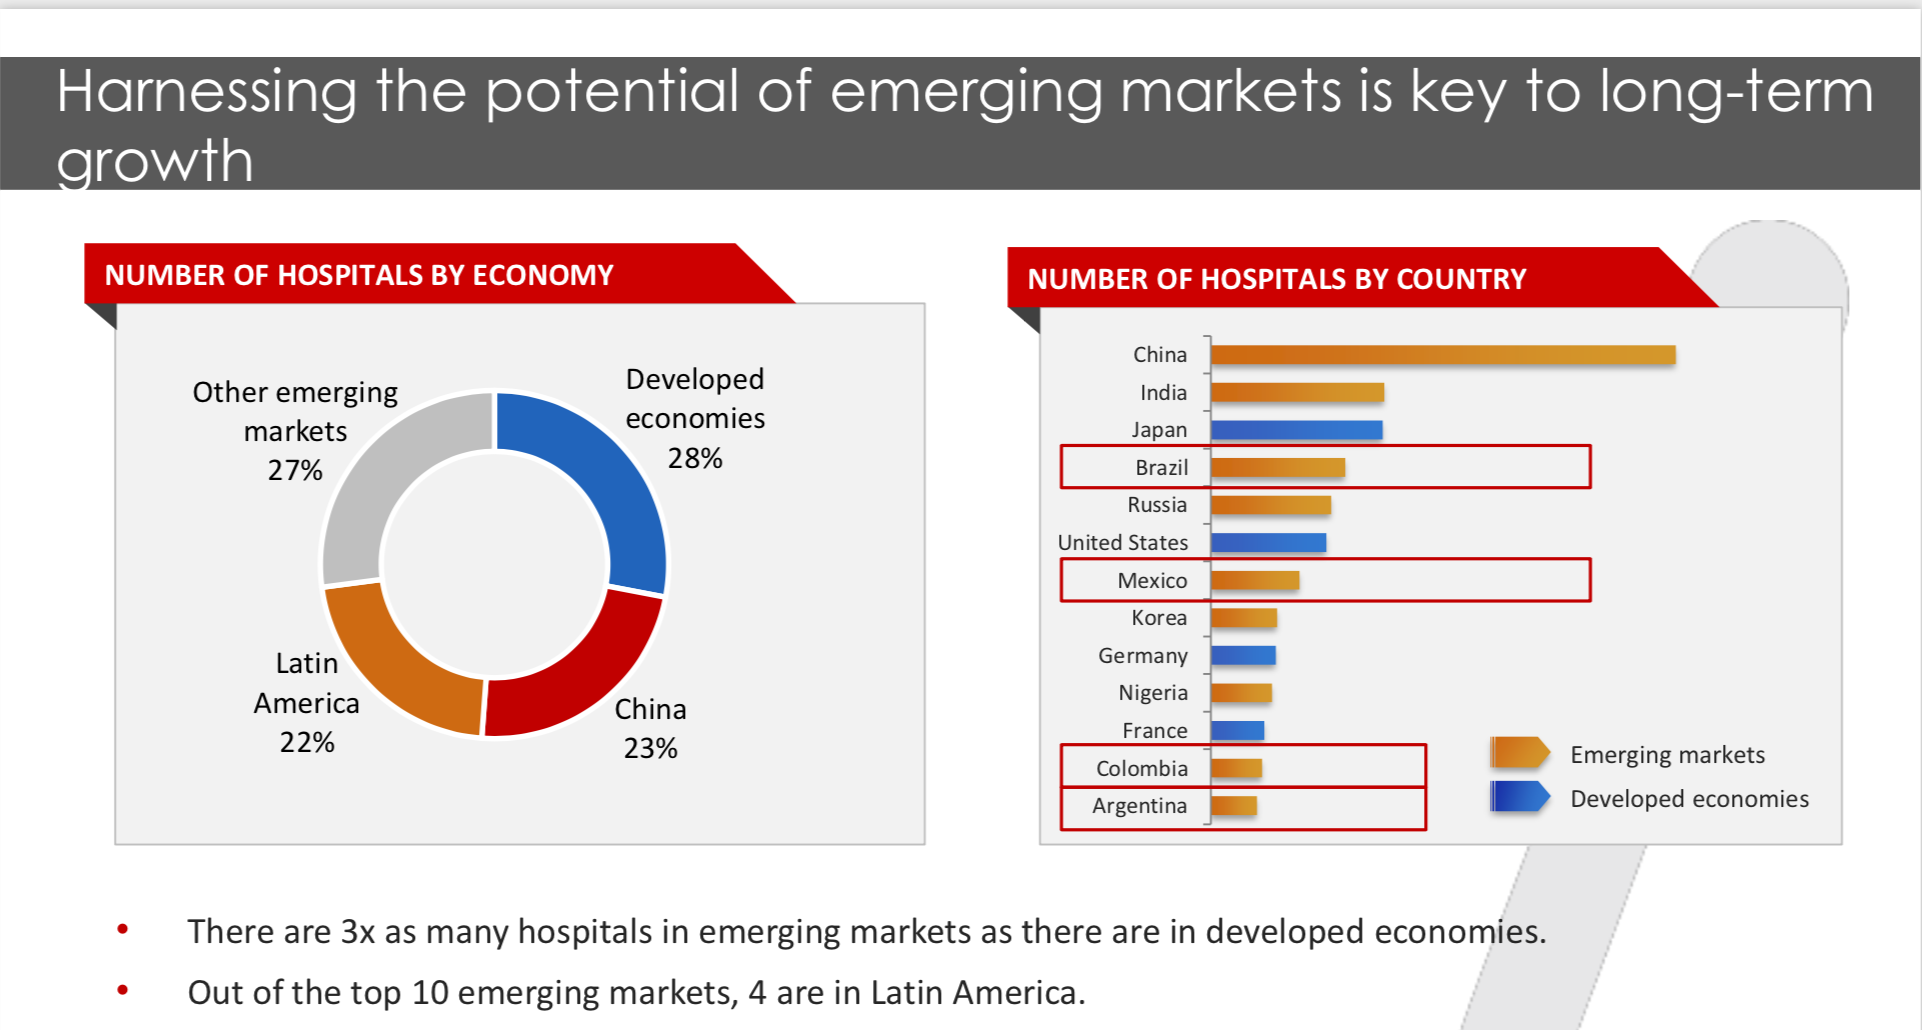 Source:  GHI analysis  based on data from the OECD, CEPAL, WHO, the World Bank and certain local ministries.